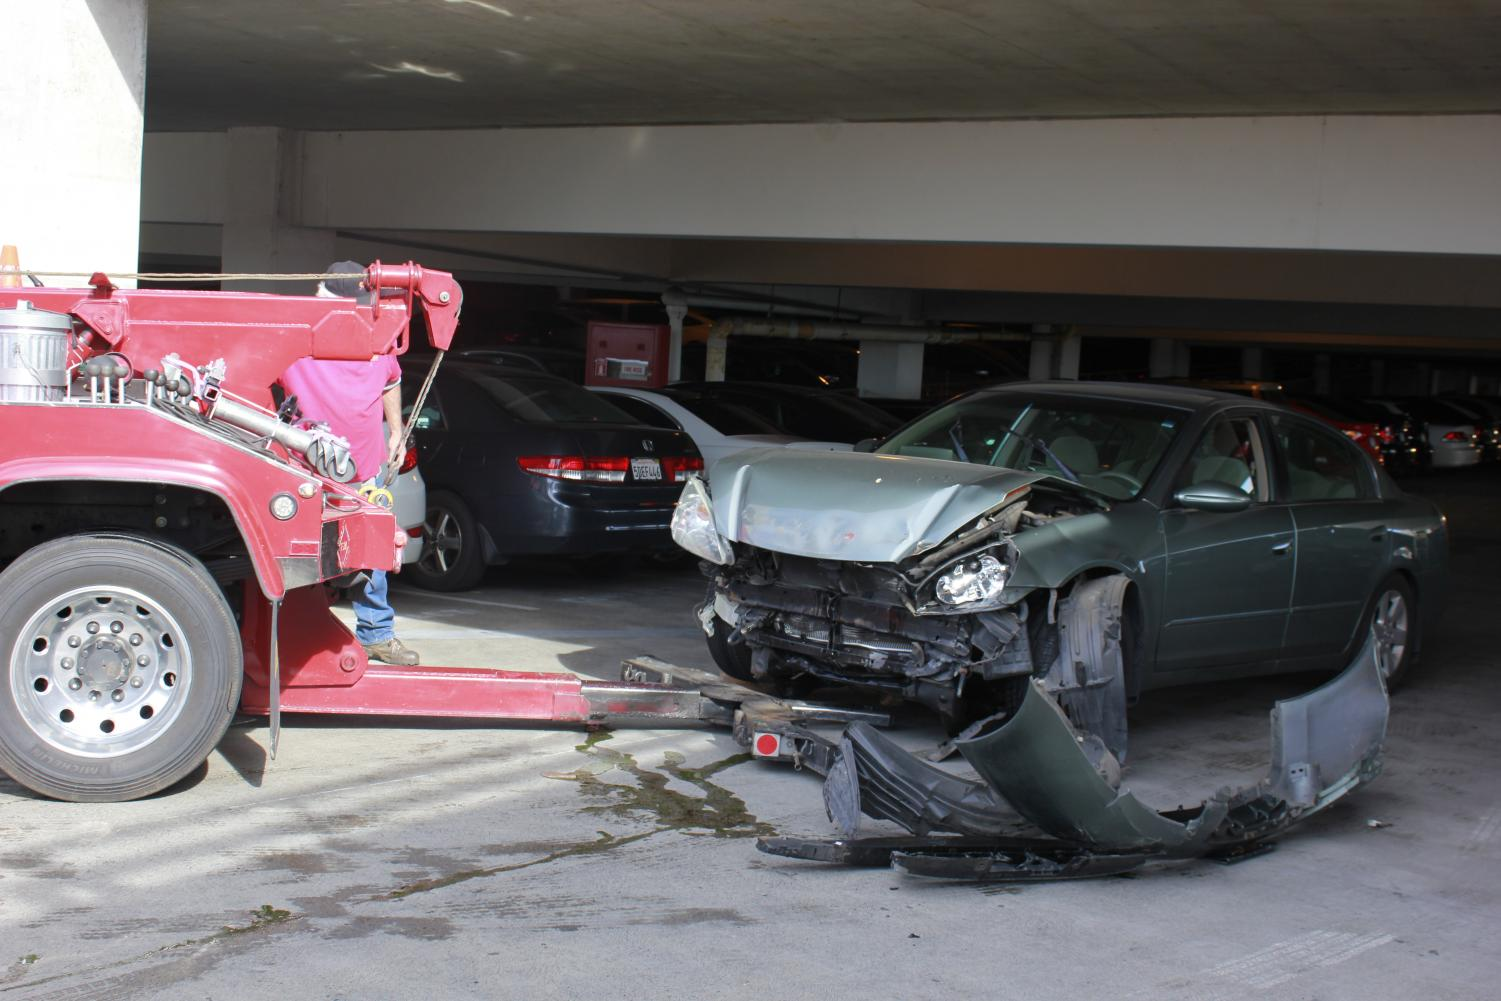 On February 4, 2020 a collision into a railing occurred on the 4th floor of Parking Structure 1, located between Sacramento State's baseball and soccer field. Police said the student involved was evaluated for minor injuries and the vehicle had to be towed away.